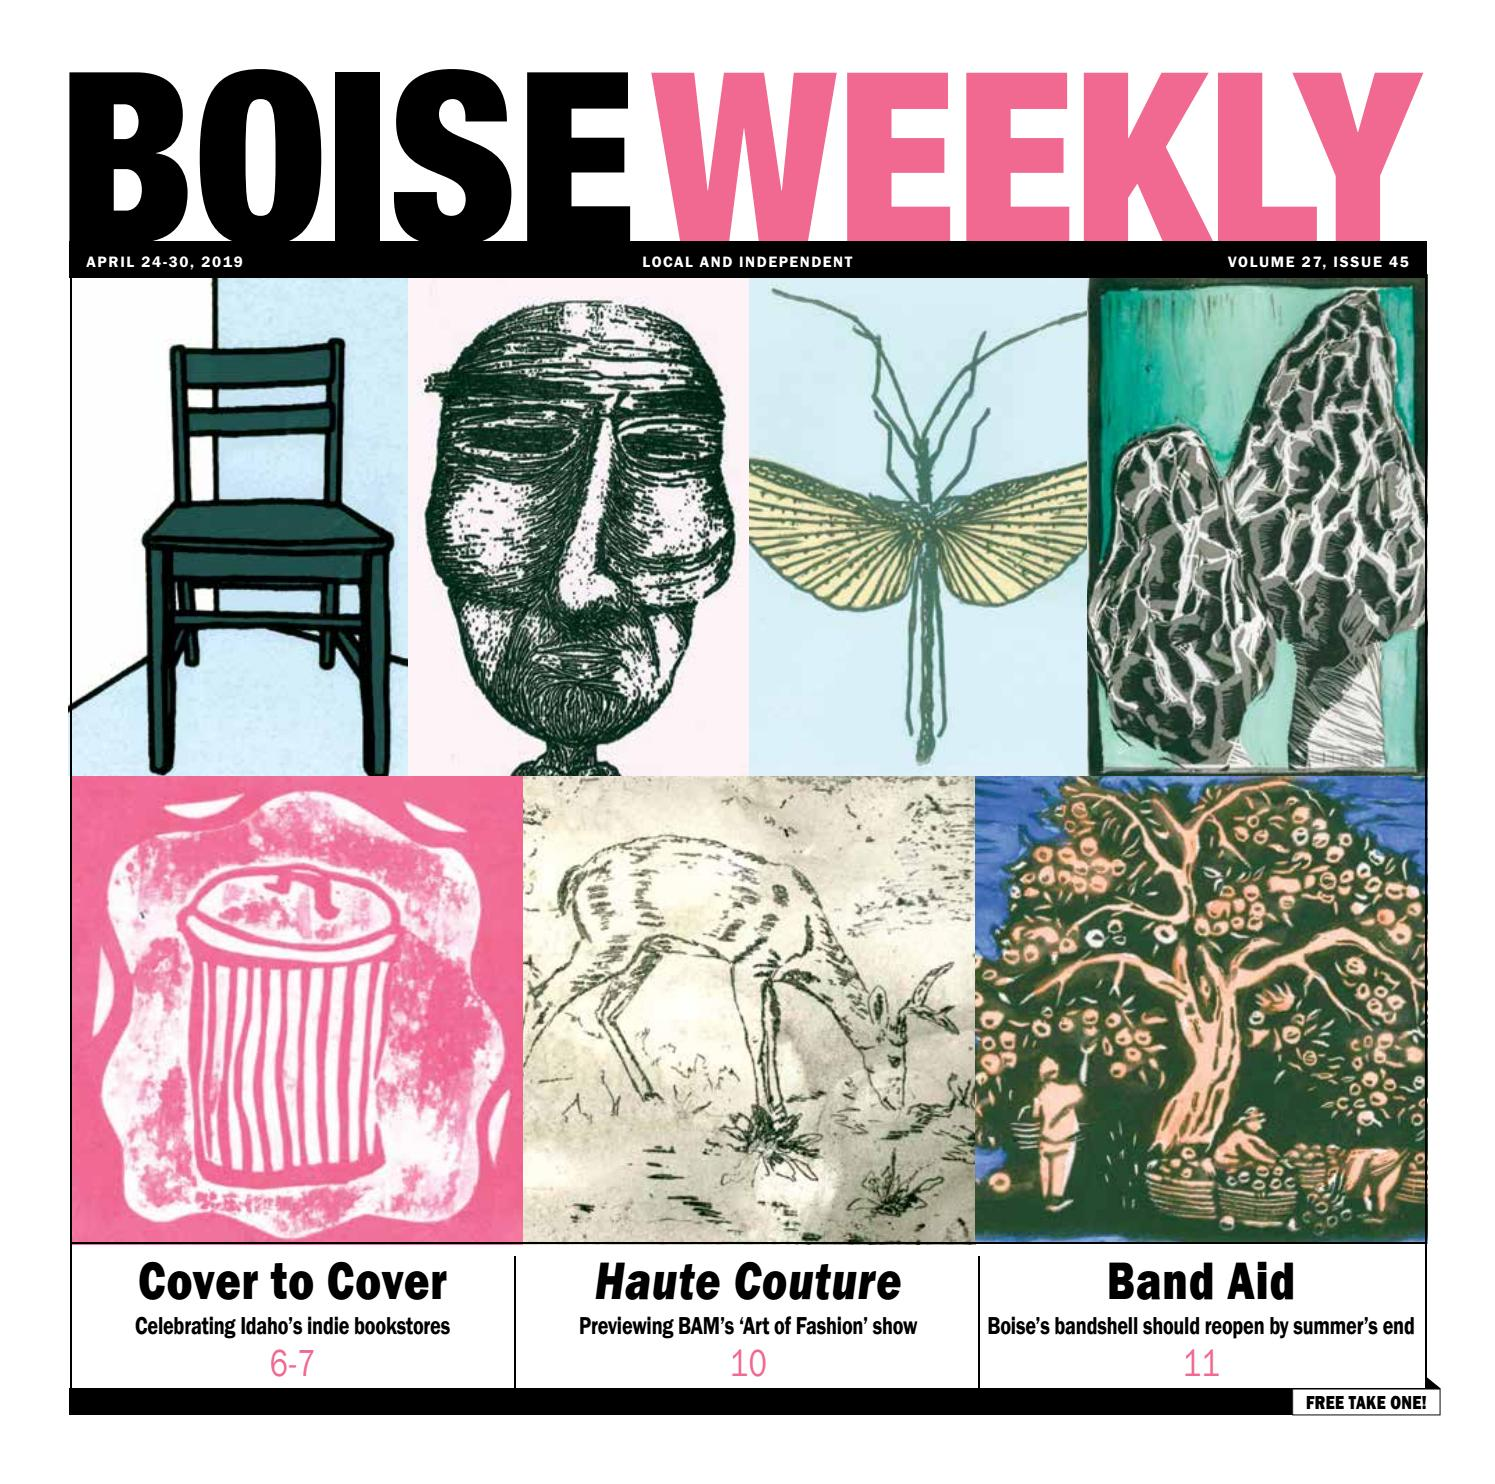 Boise Weekly Vol  27 Issue 45 by Boise Weekly - issuu